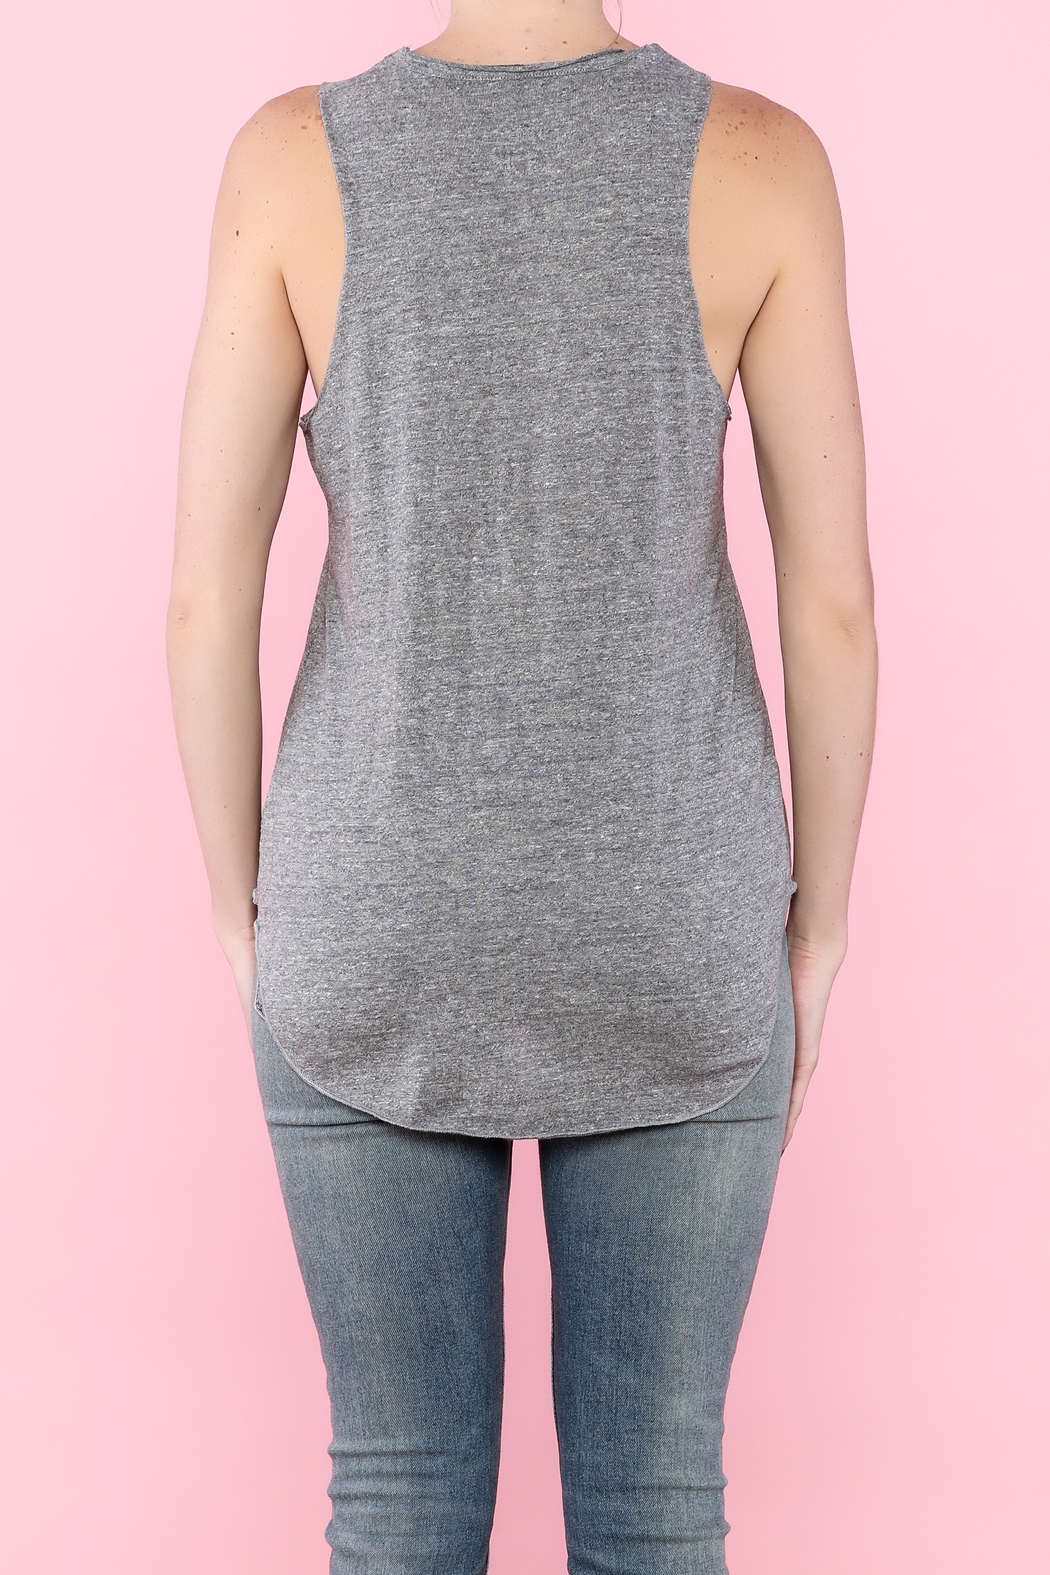 Chaser Gray Graphic Tee - Back Cropped Image